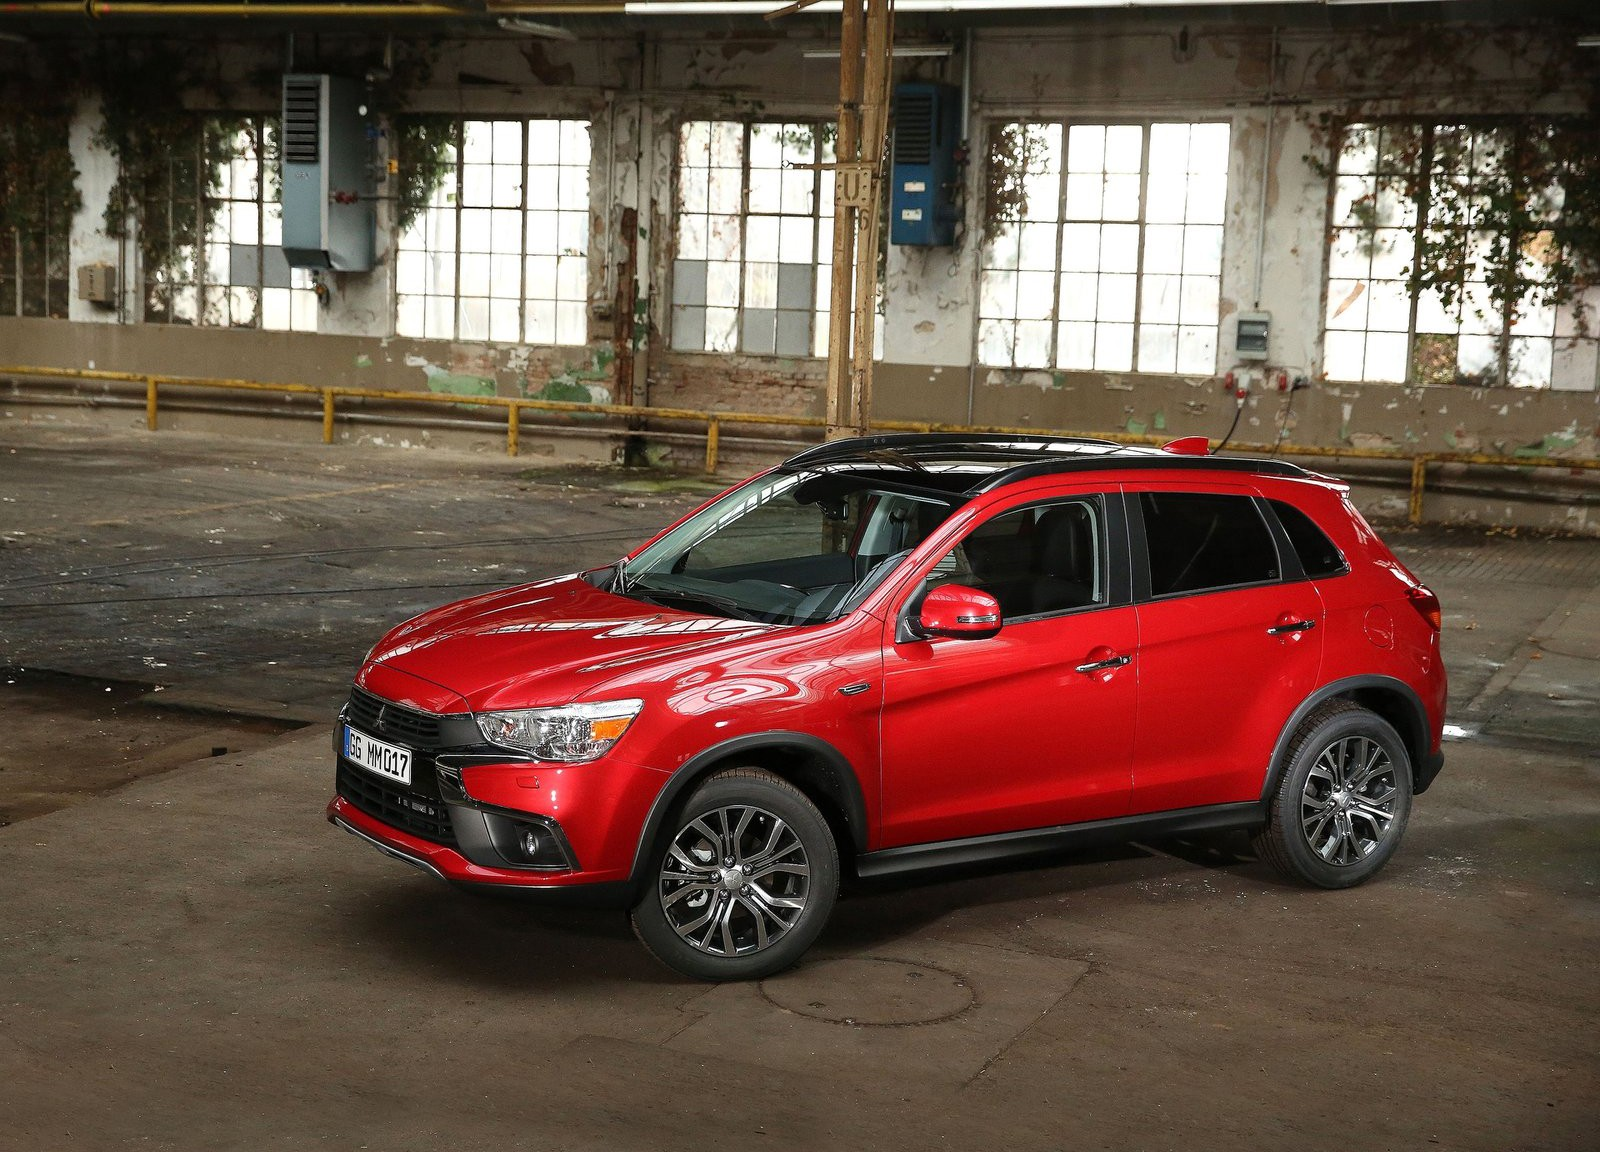 2017 Mitsubishi ASX Facelift Gets Dynamic Shield Design